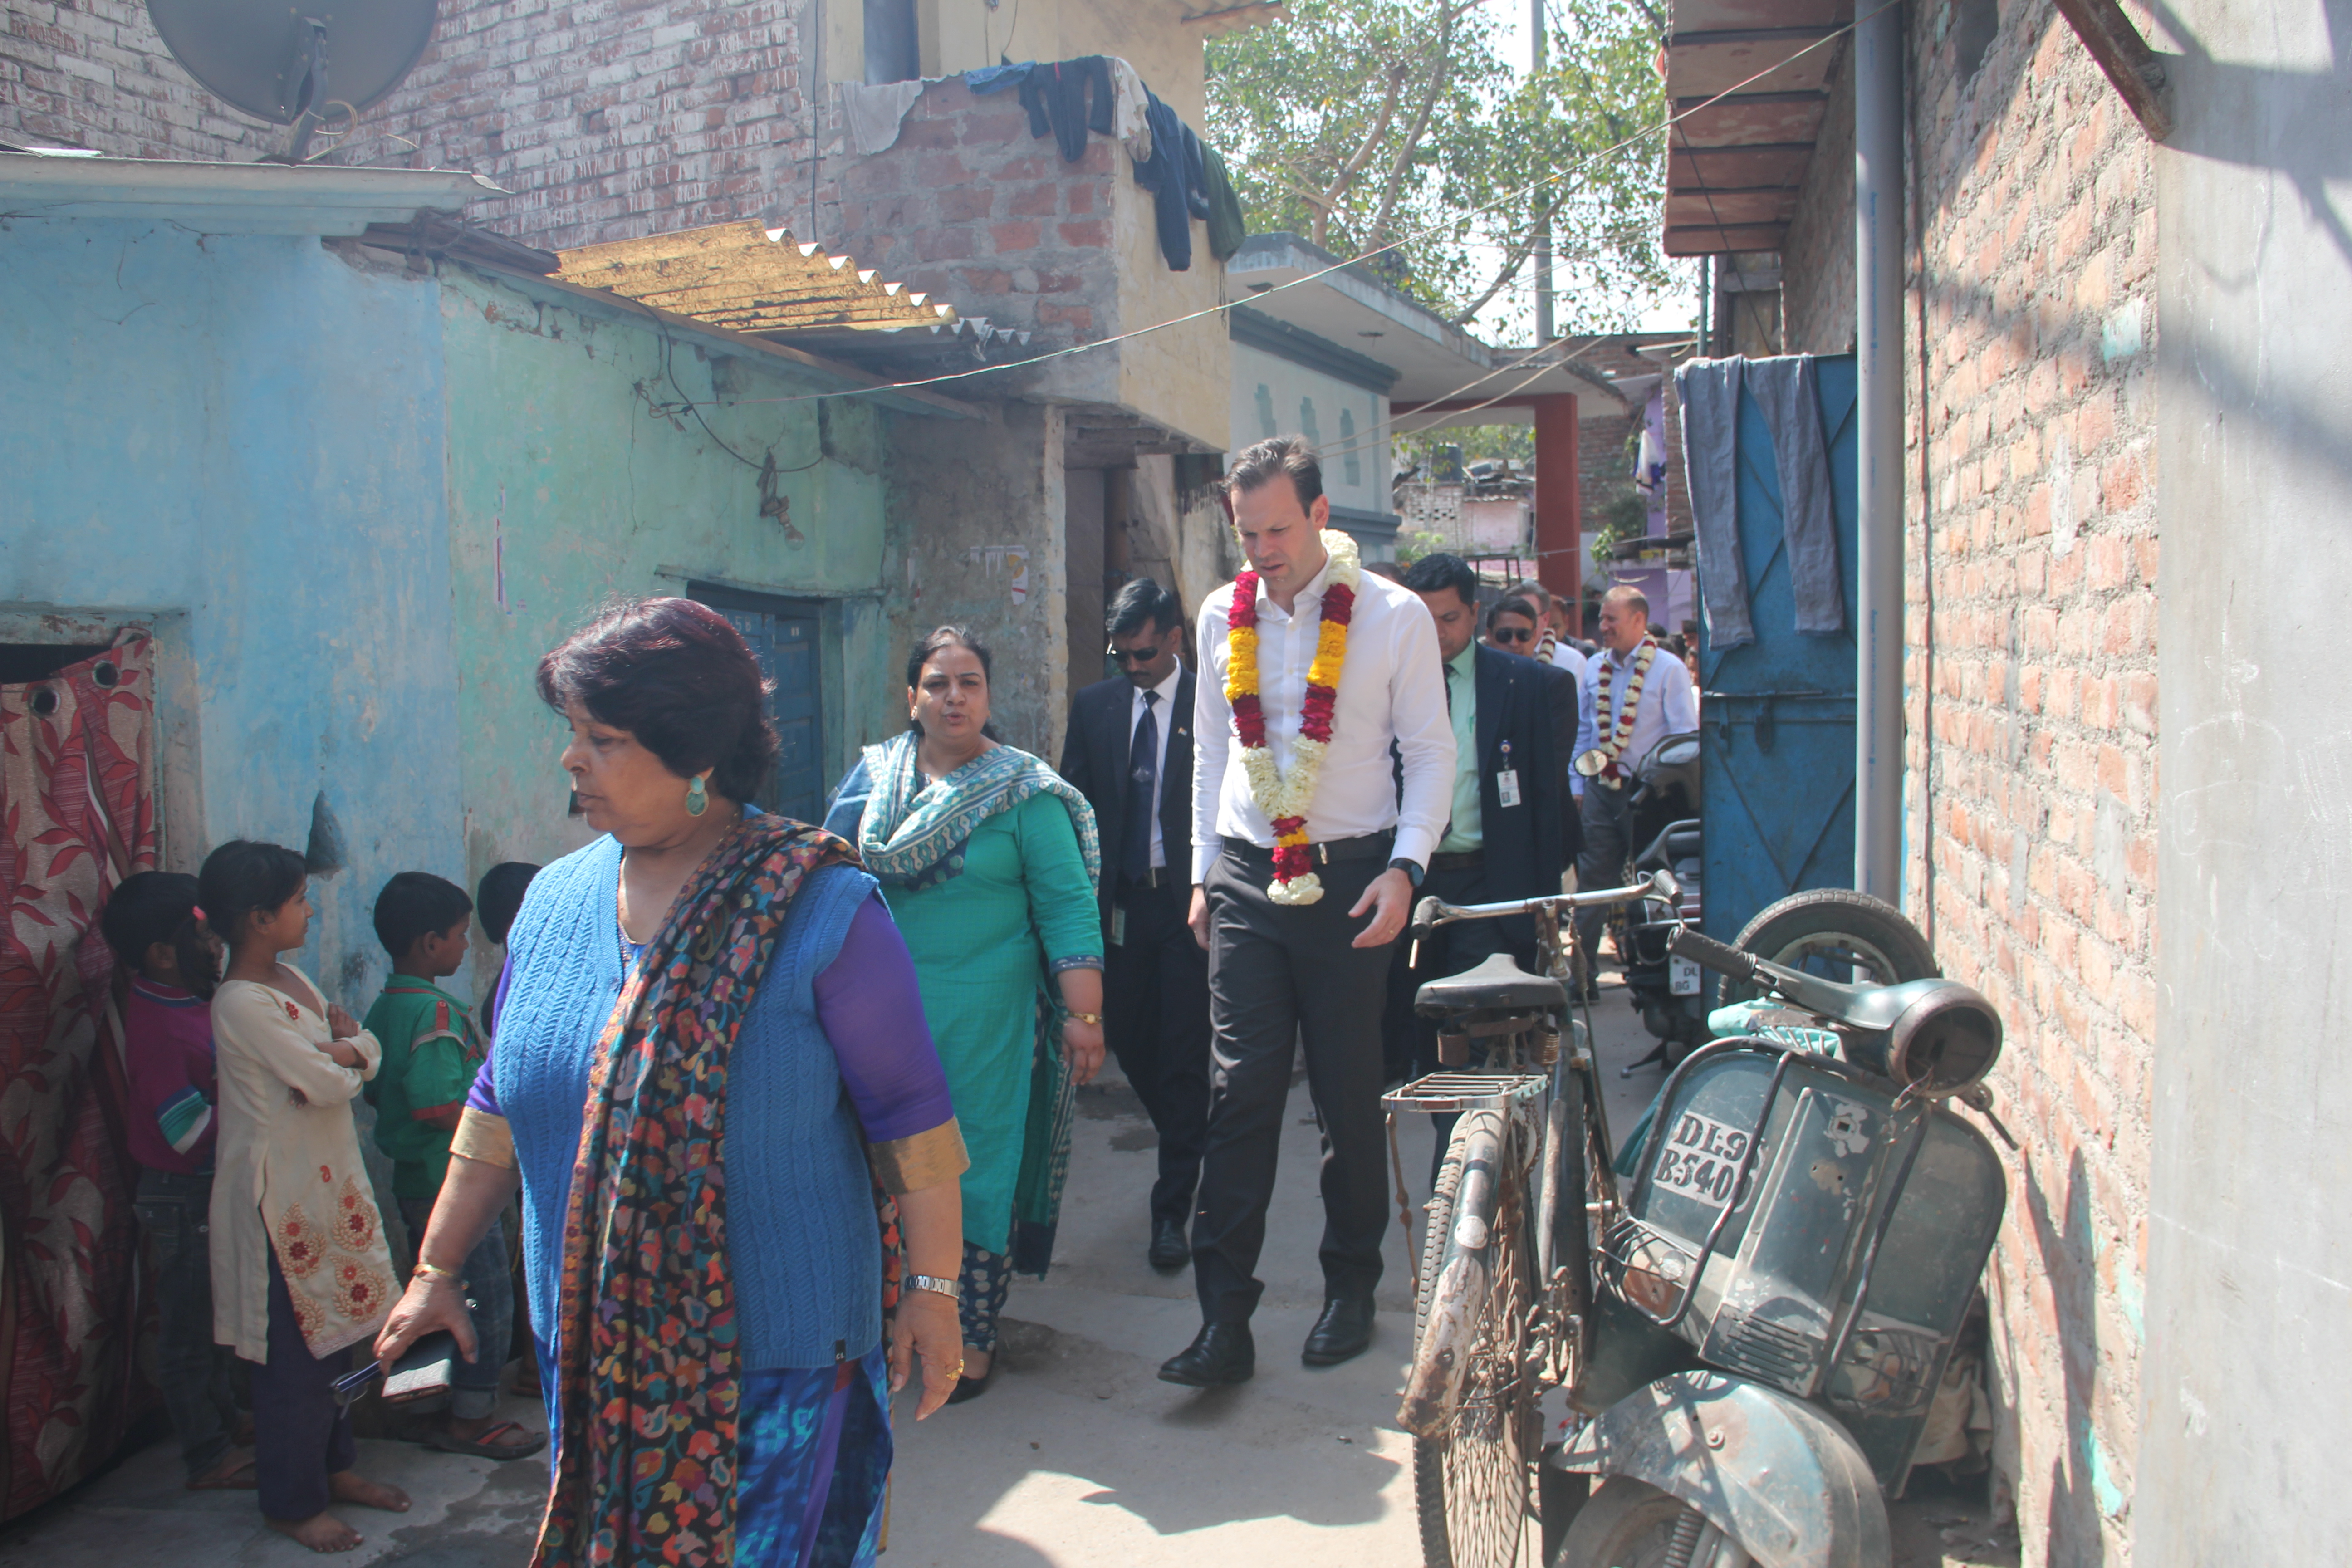 Mathew Canavan walking through the community to witness life at slums first hand.